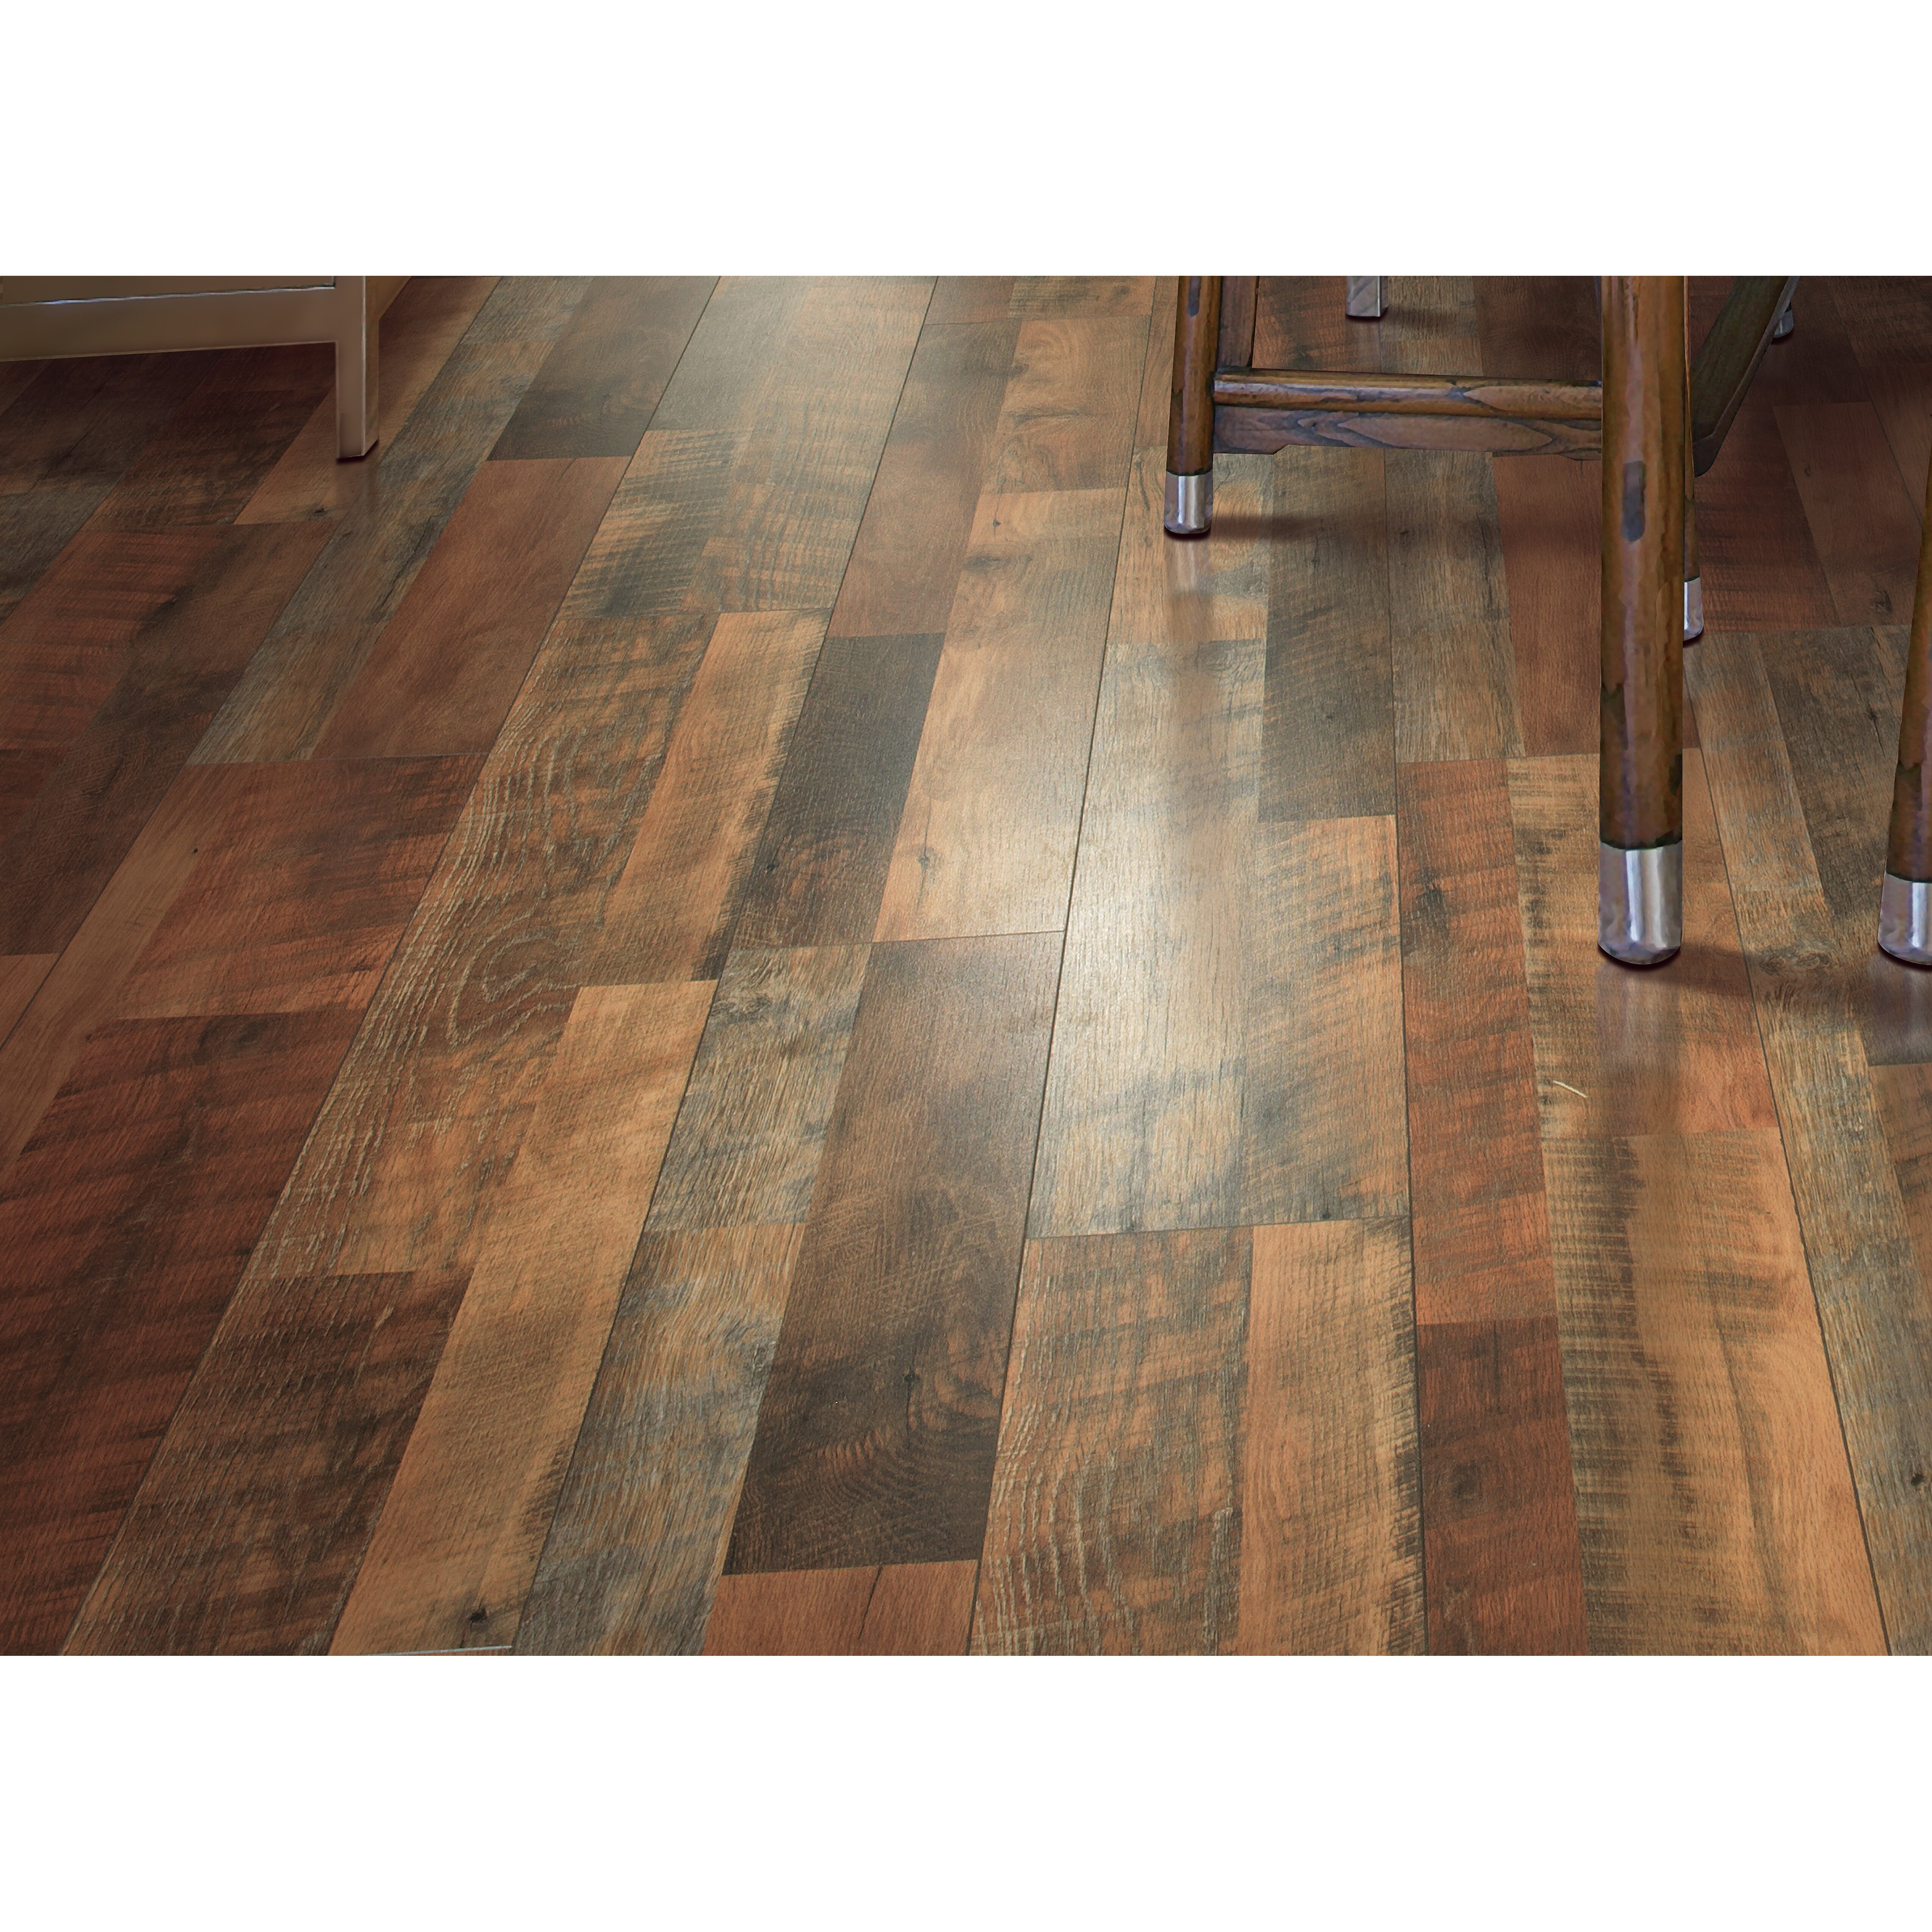 Cashe hills 8 x 47 x 7 87mm oak laminate